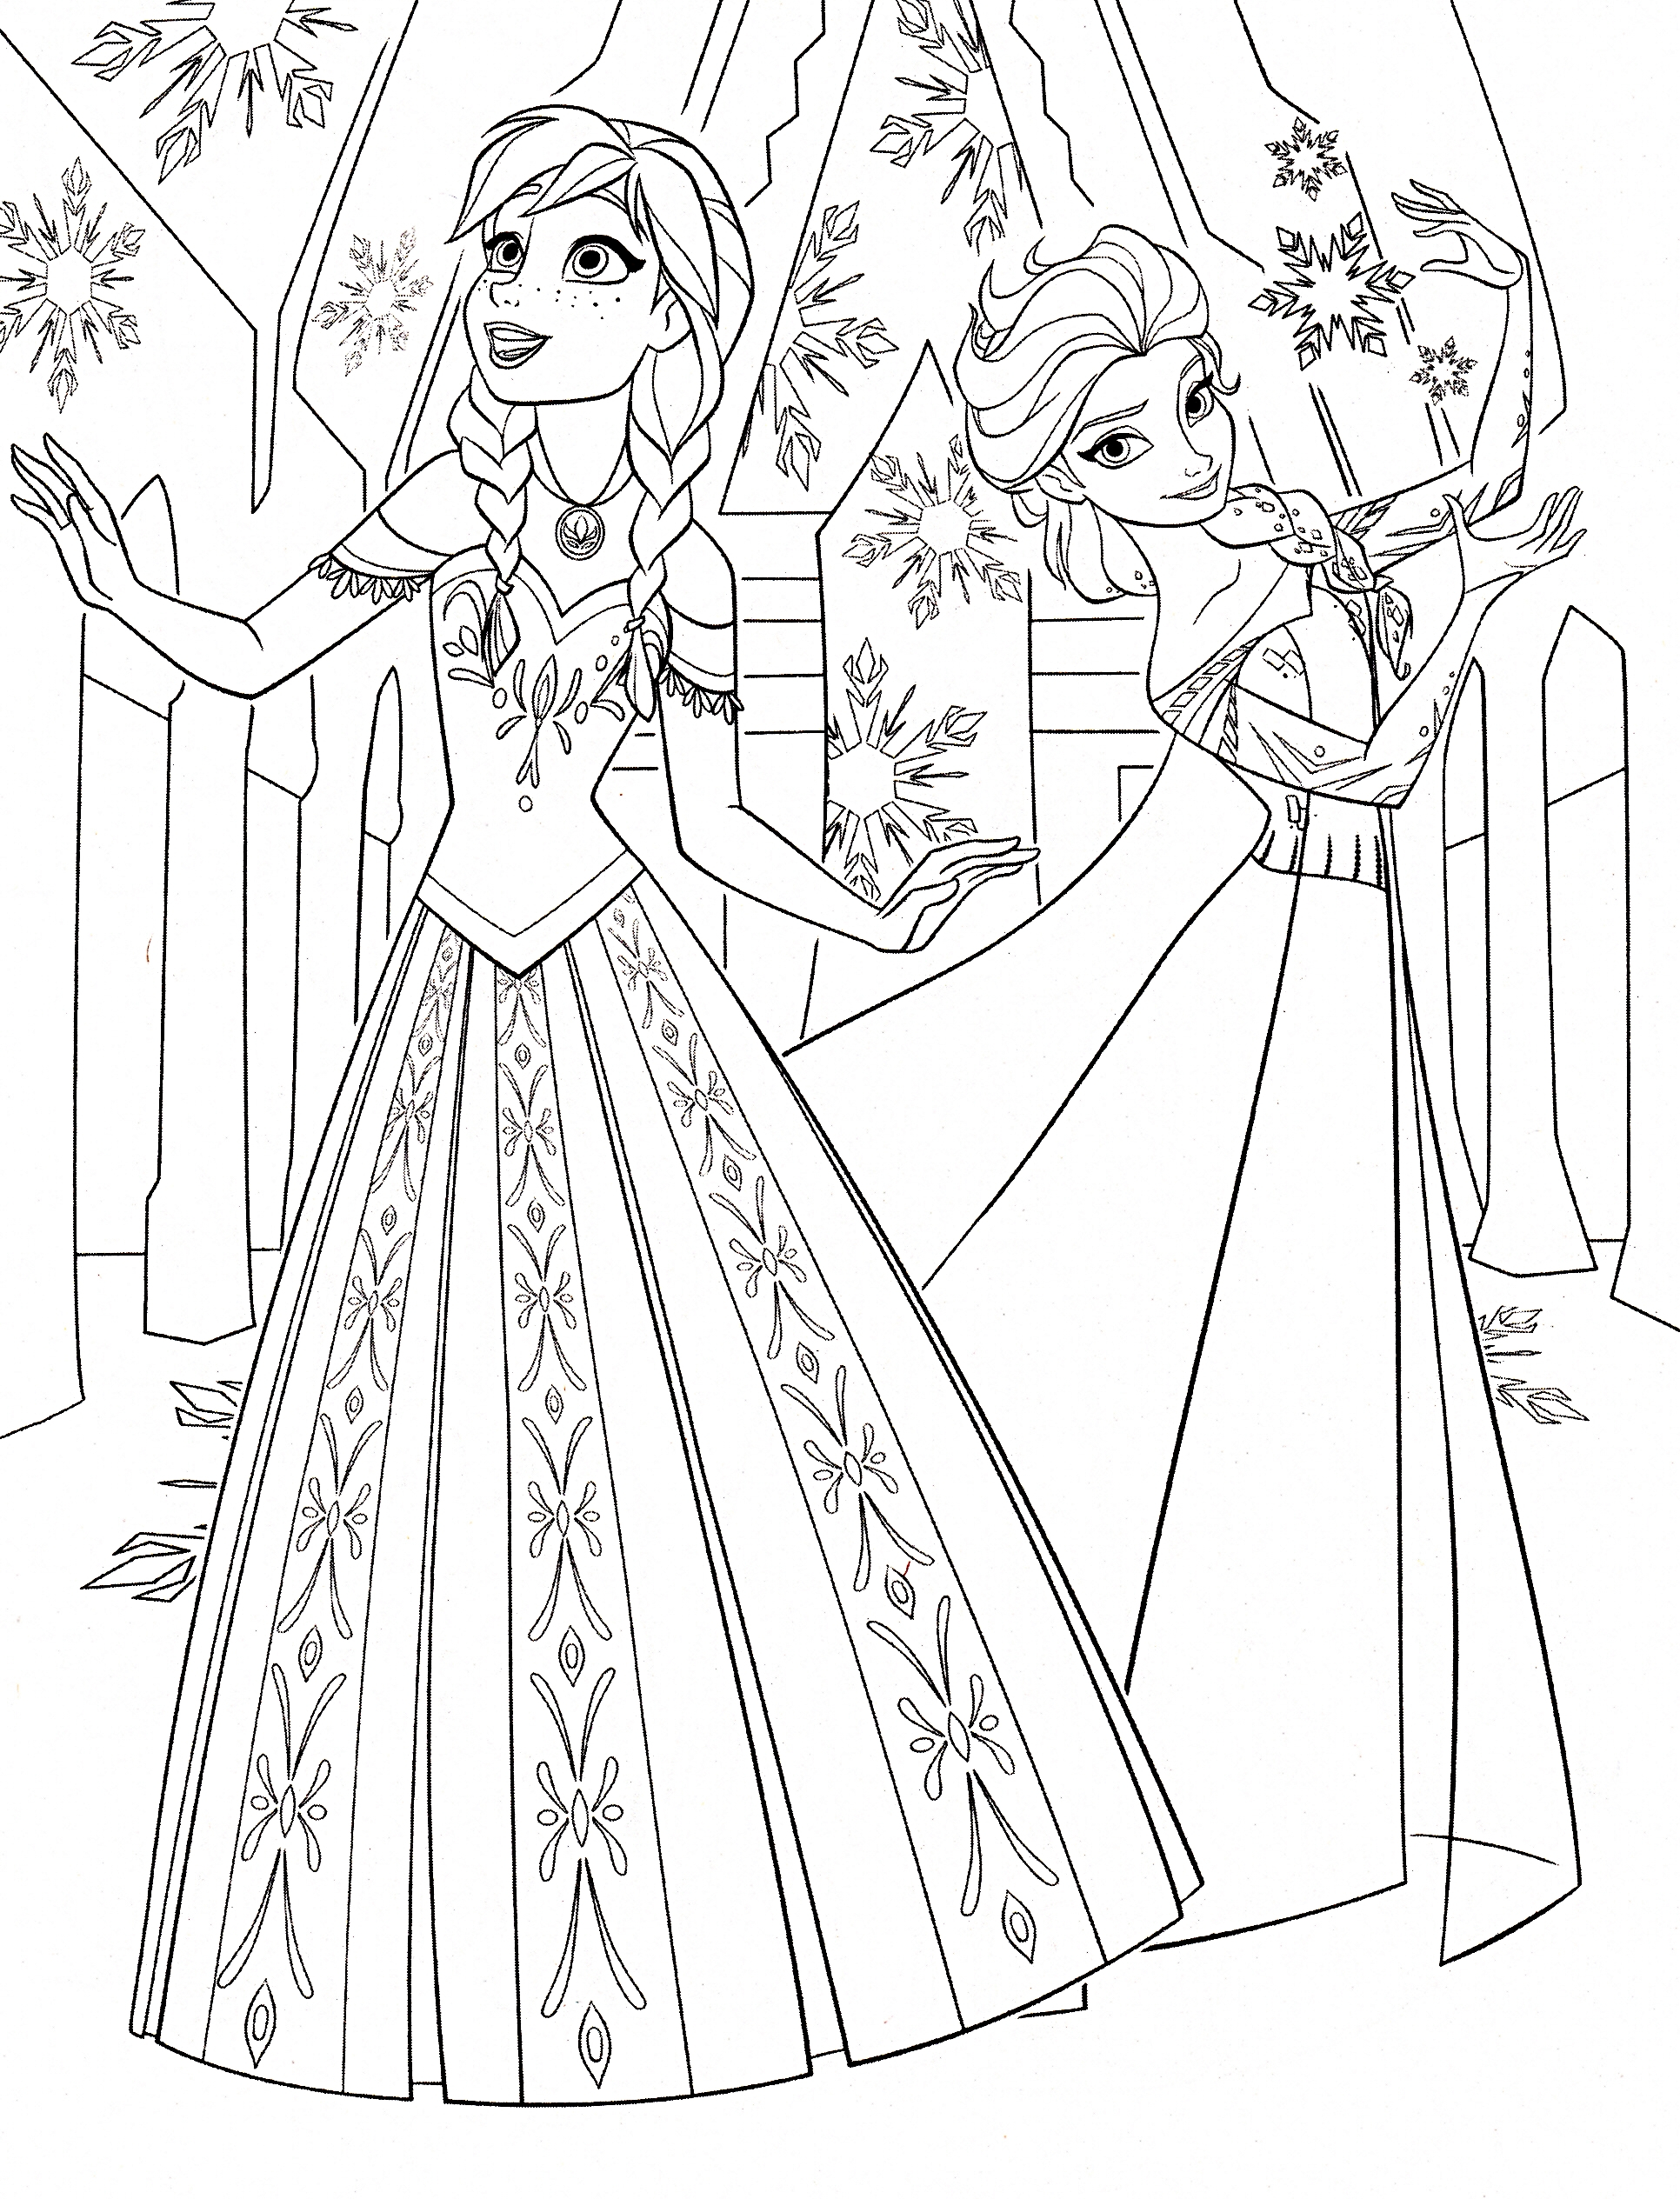 Frozen Coloring Pages Elsa Free Coloring Pages Collection – Free ...